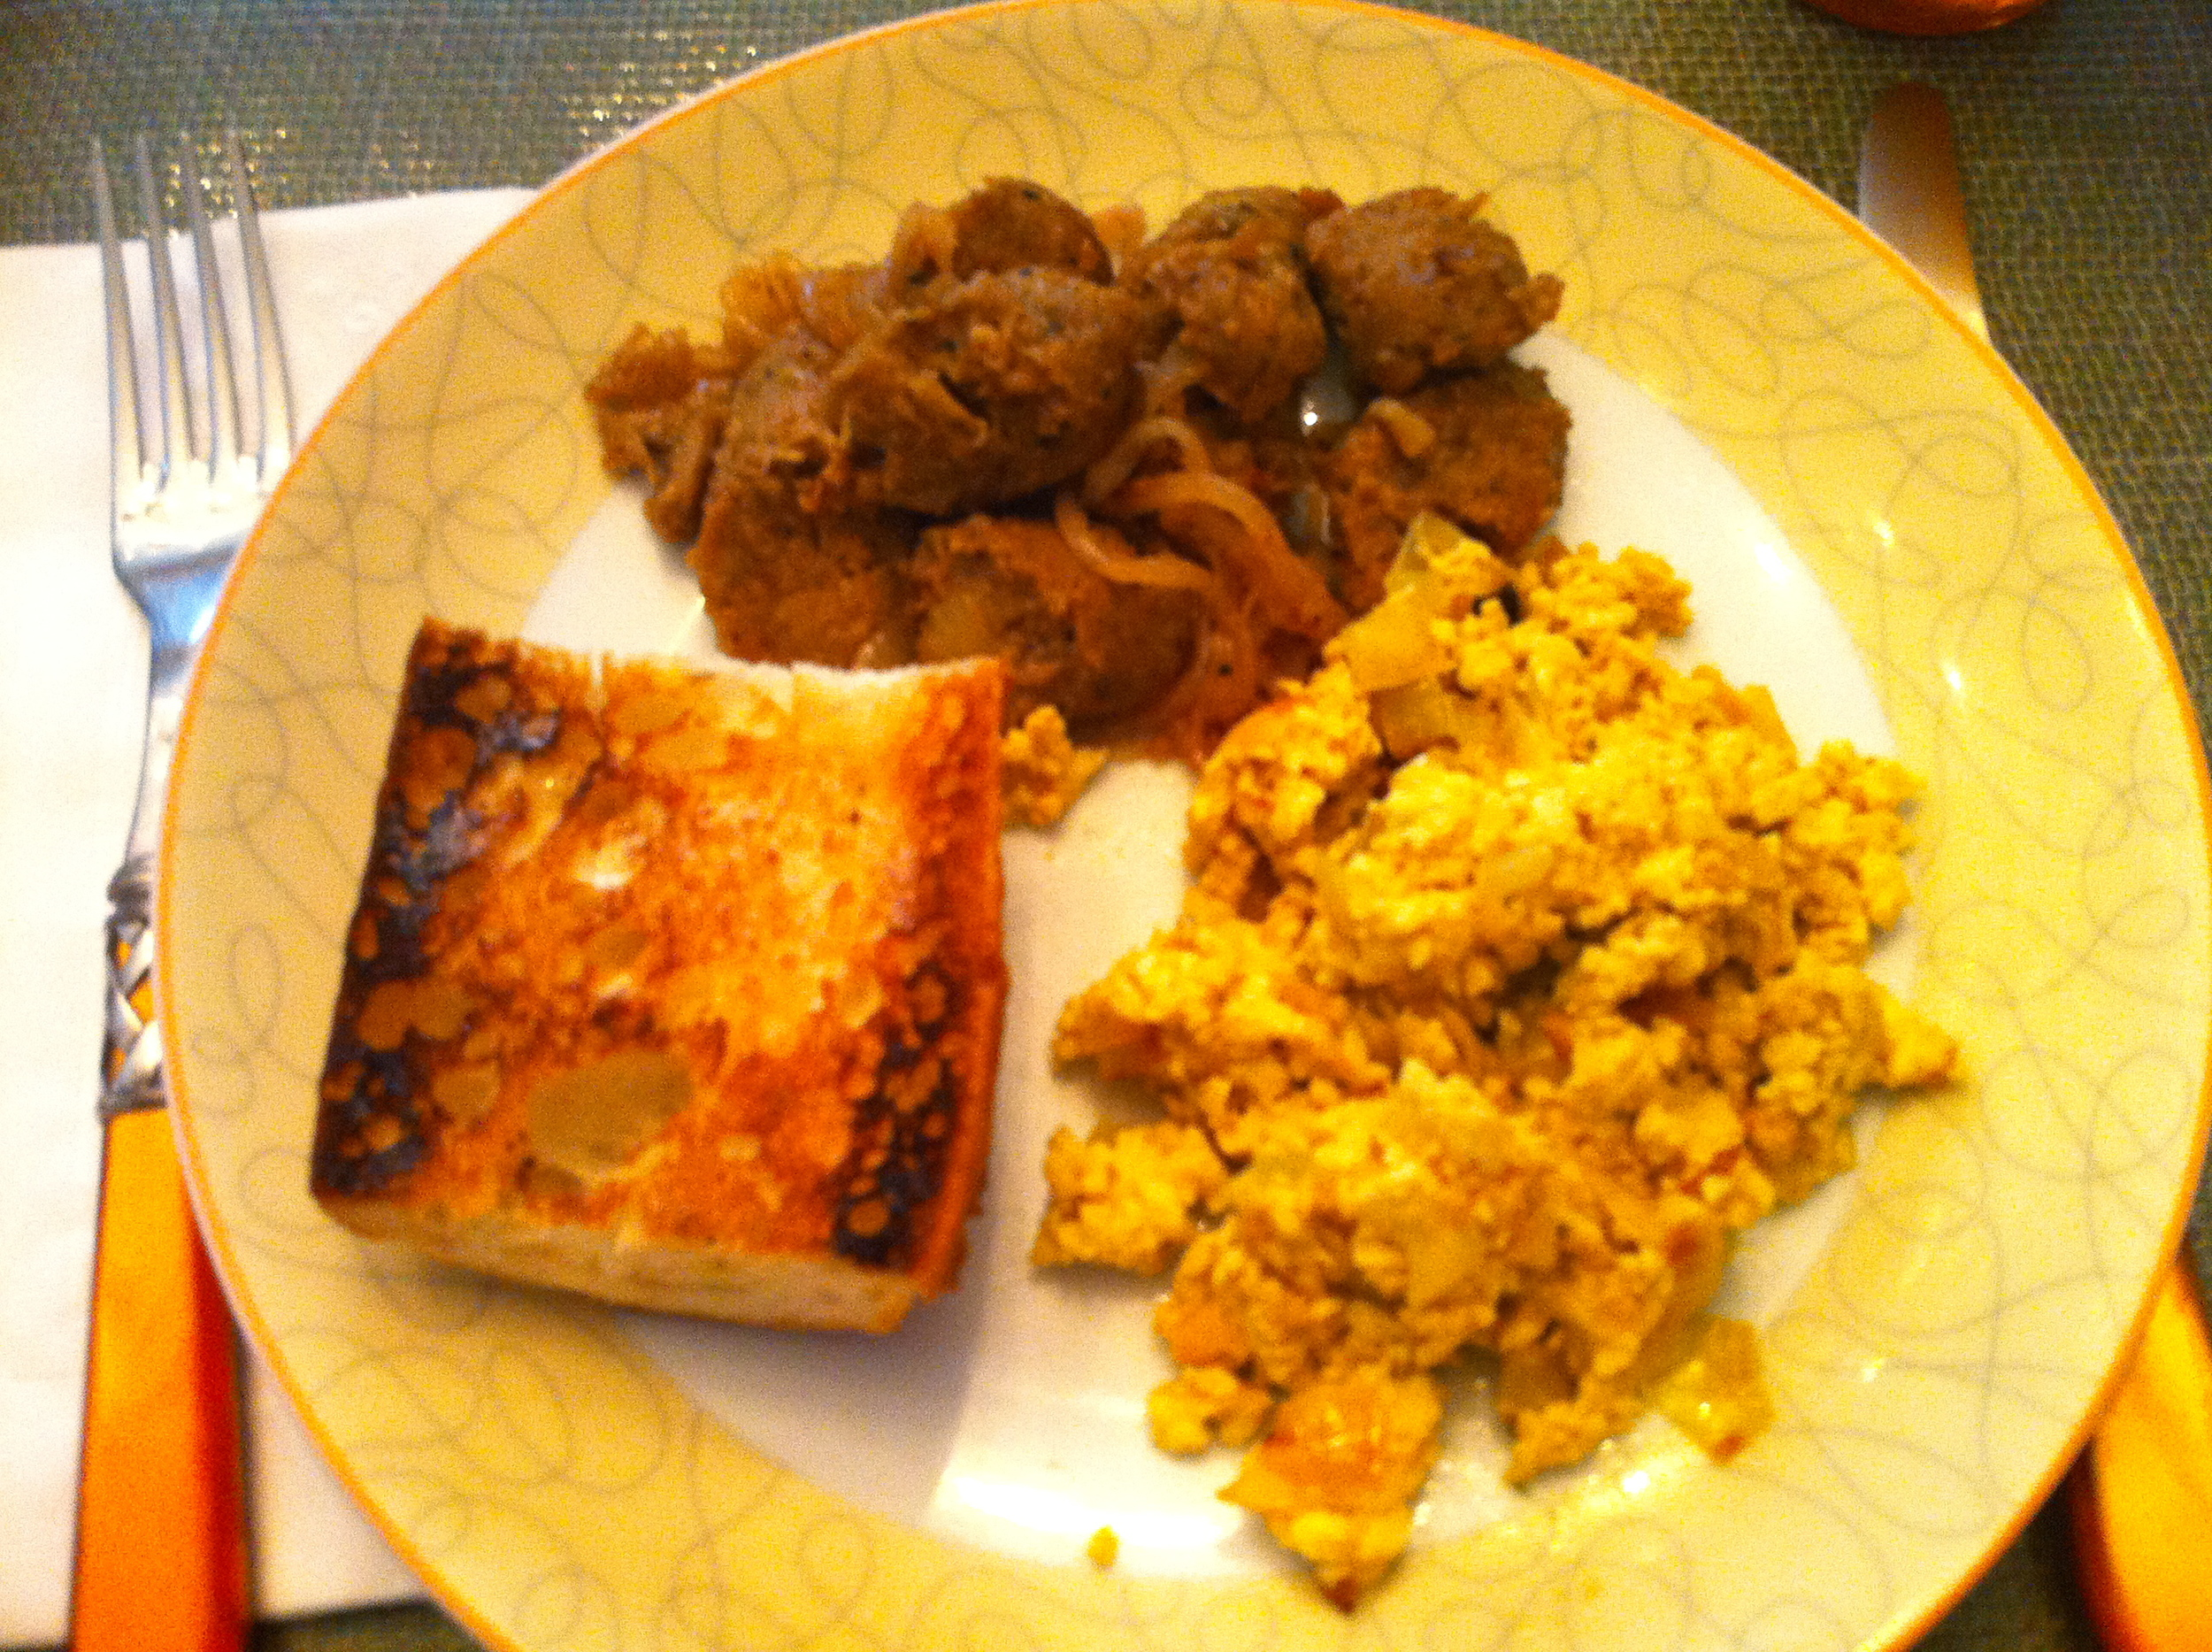 This breakfast is fully rounded and totally vegan with organic, tofu scramble, vegan sausage and onions, and toast fresh from the bakery.